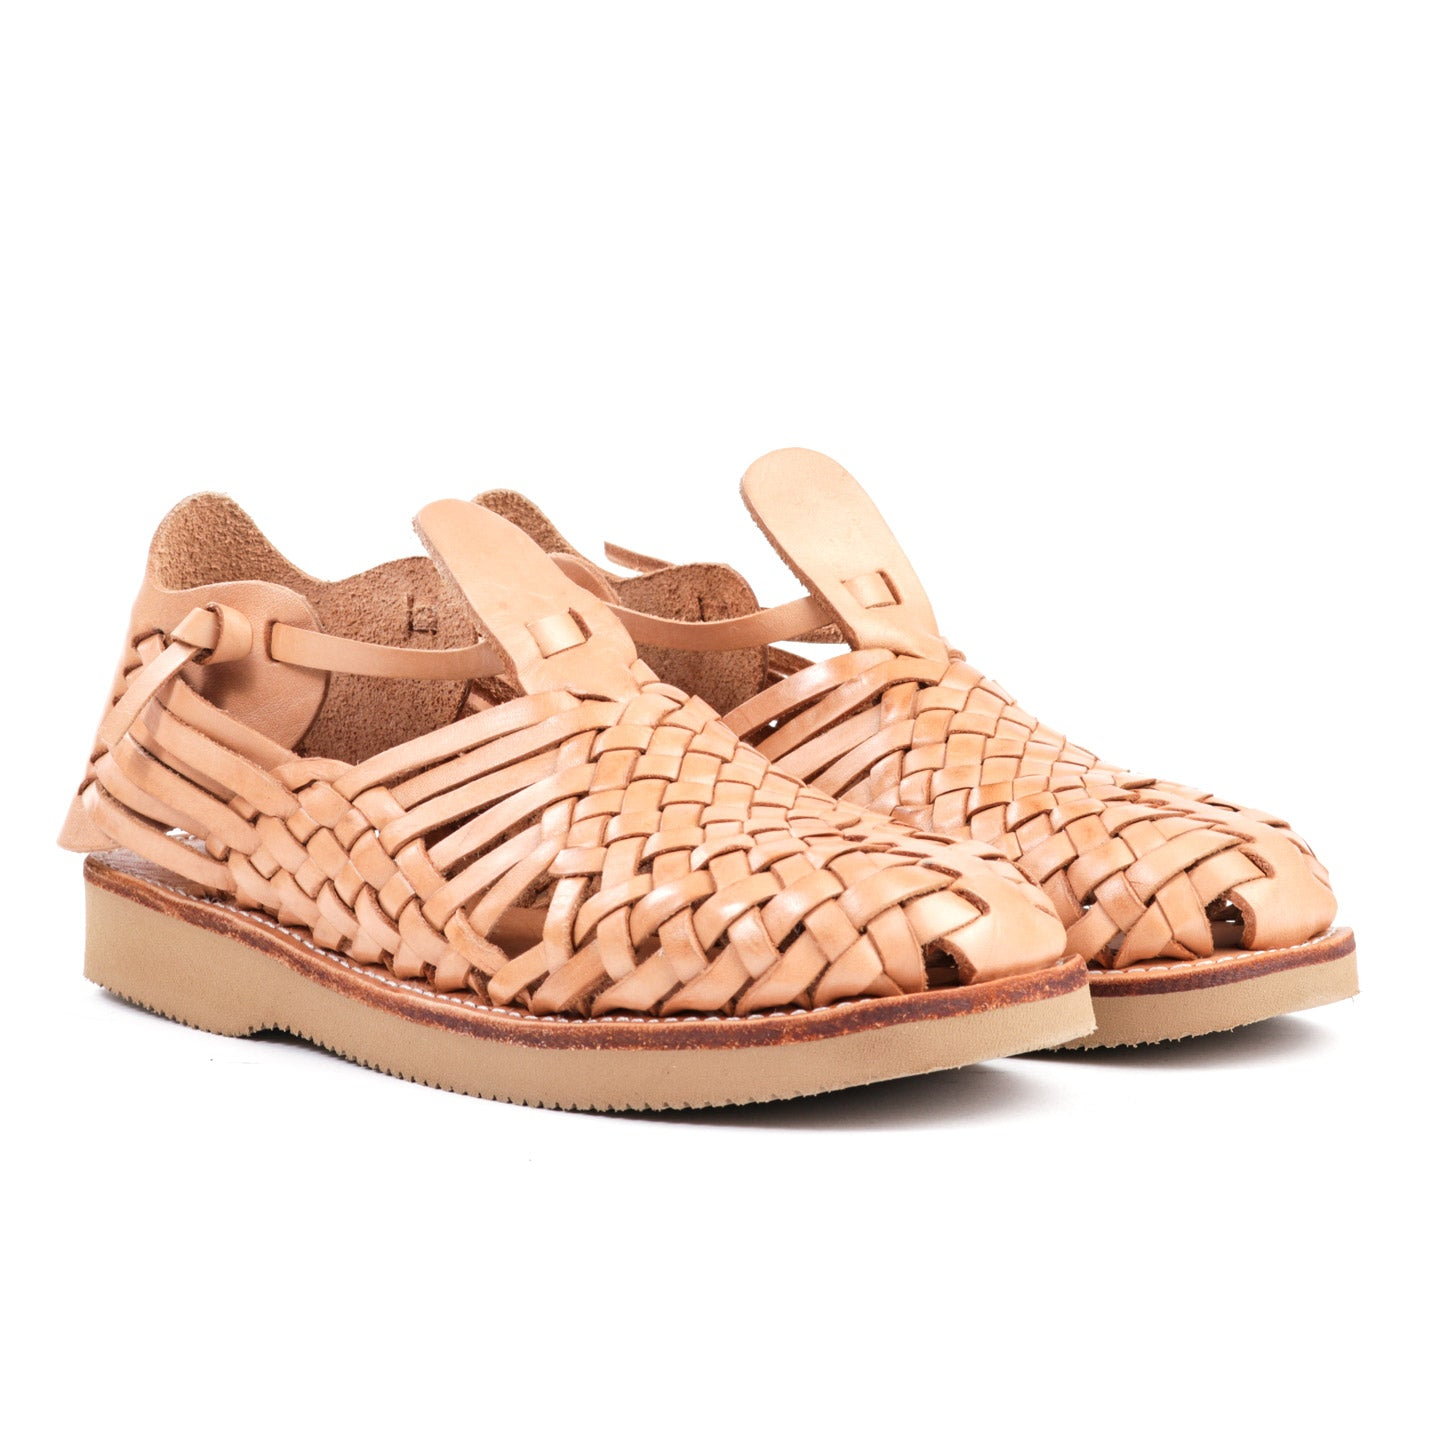 YUKETEN CRUZ SANDAL NATURAL